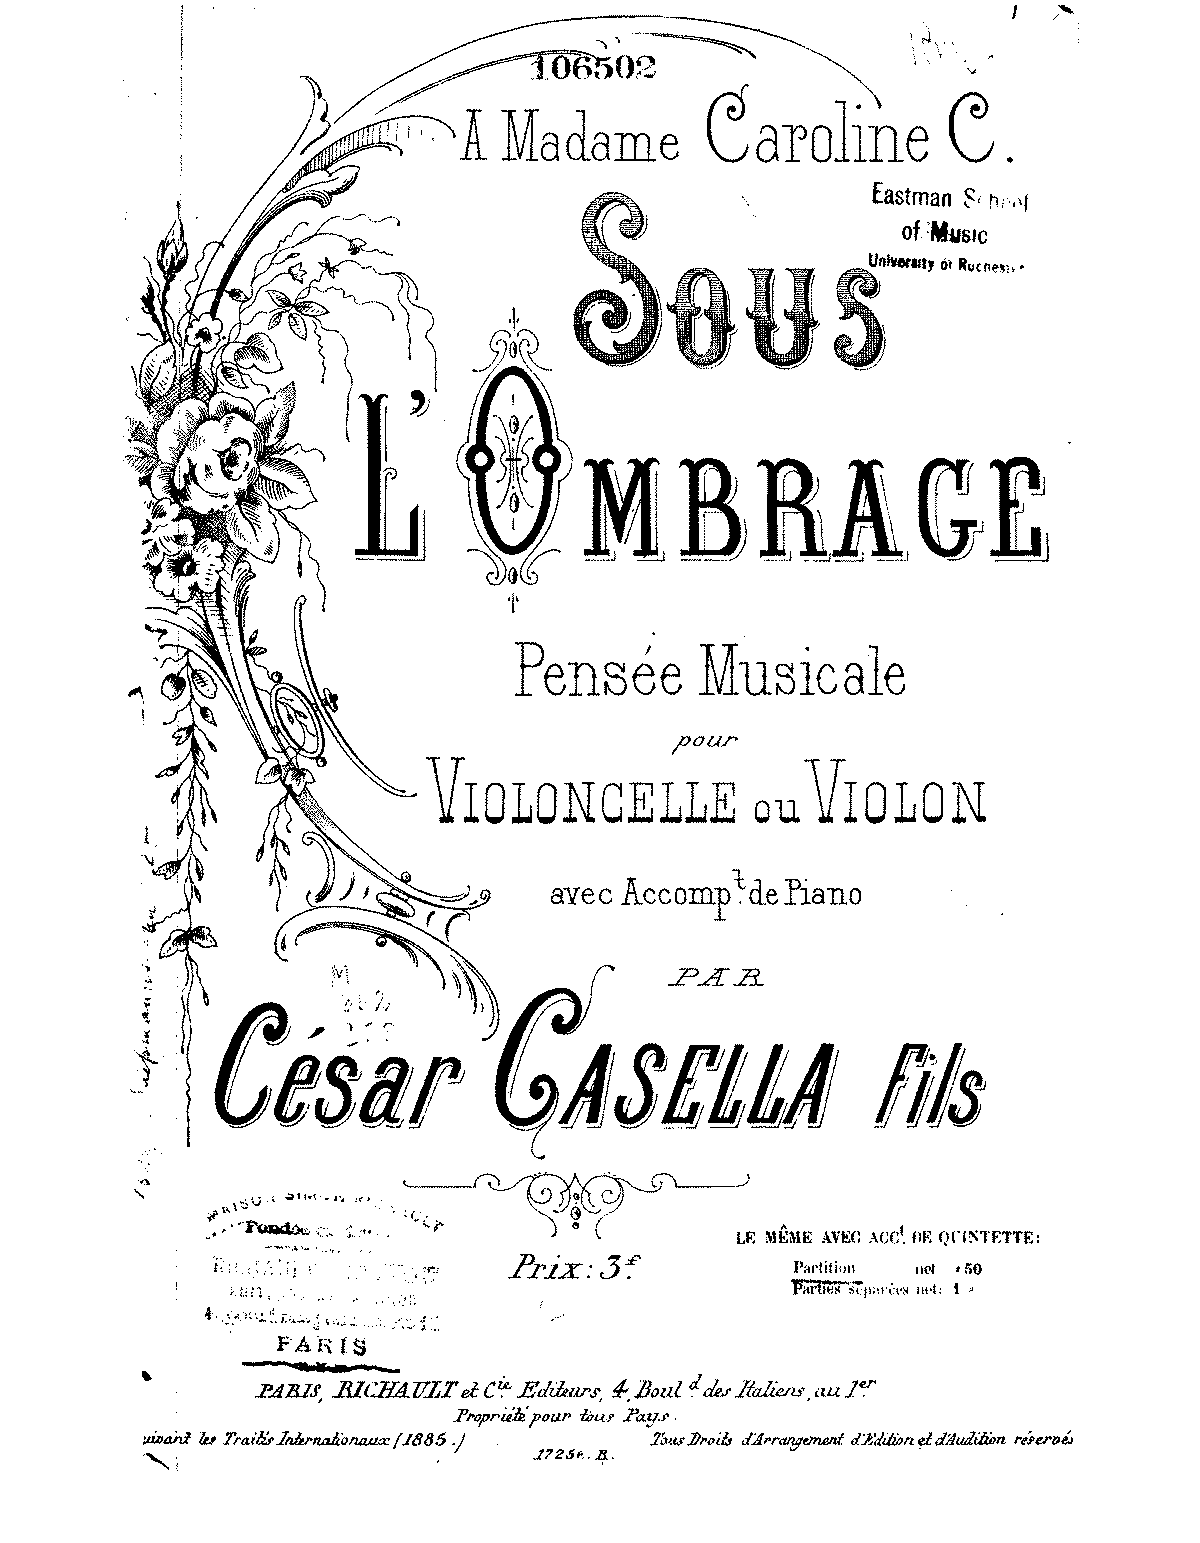 PMLP77627-Casella - Sous L'ombrage for Cello and strings score.pdf